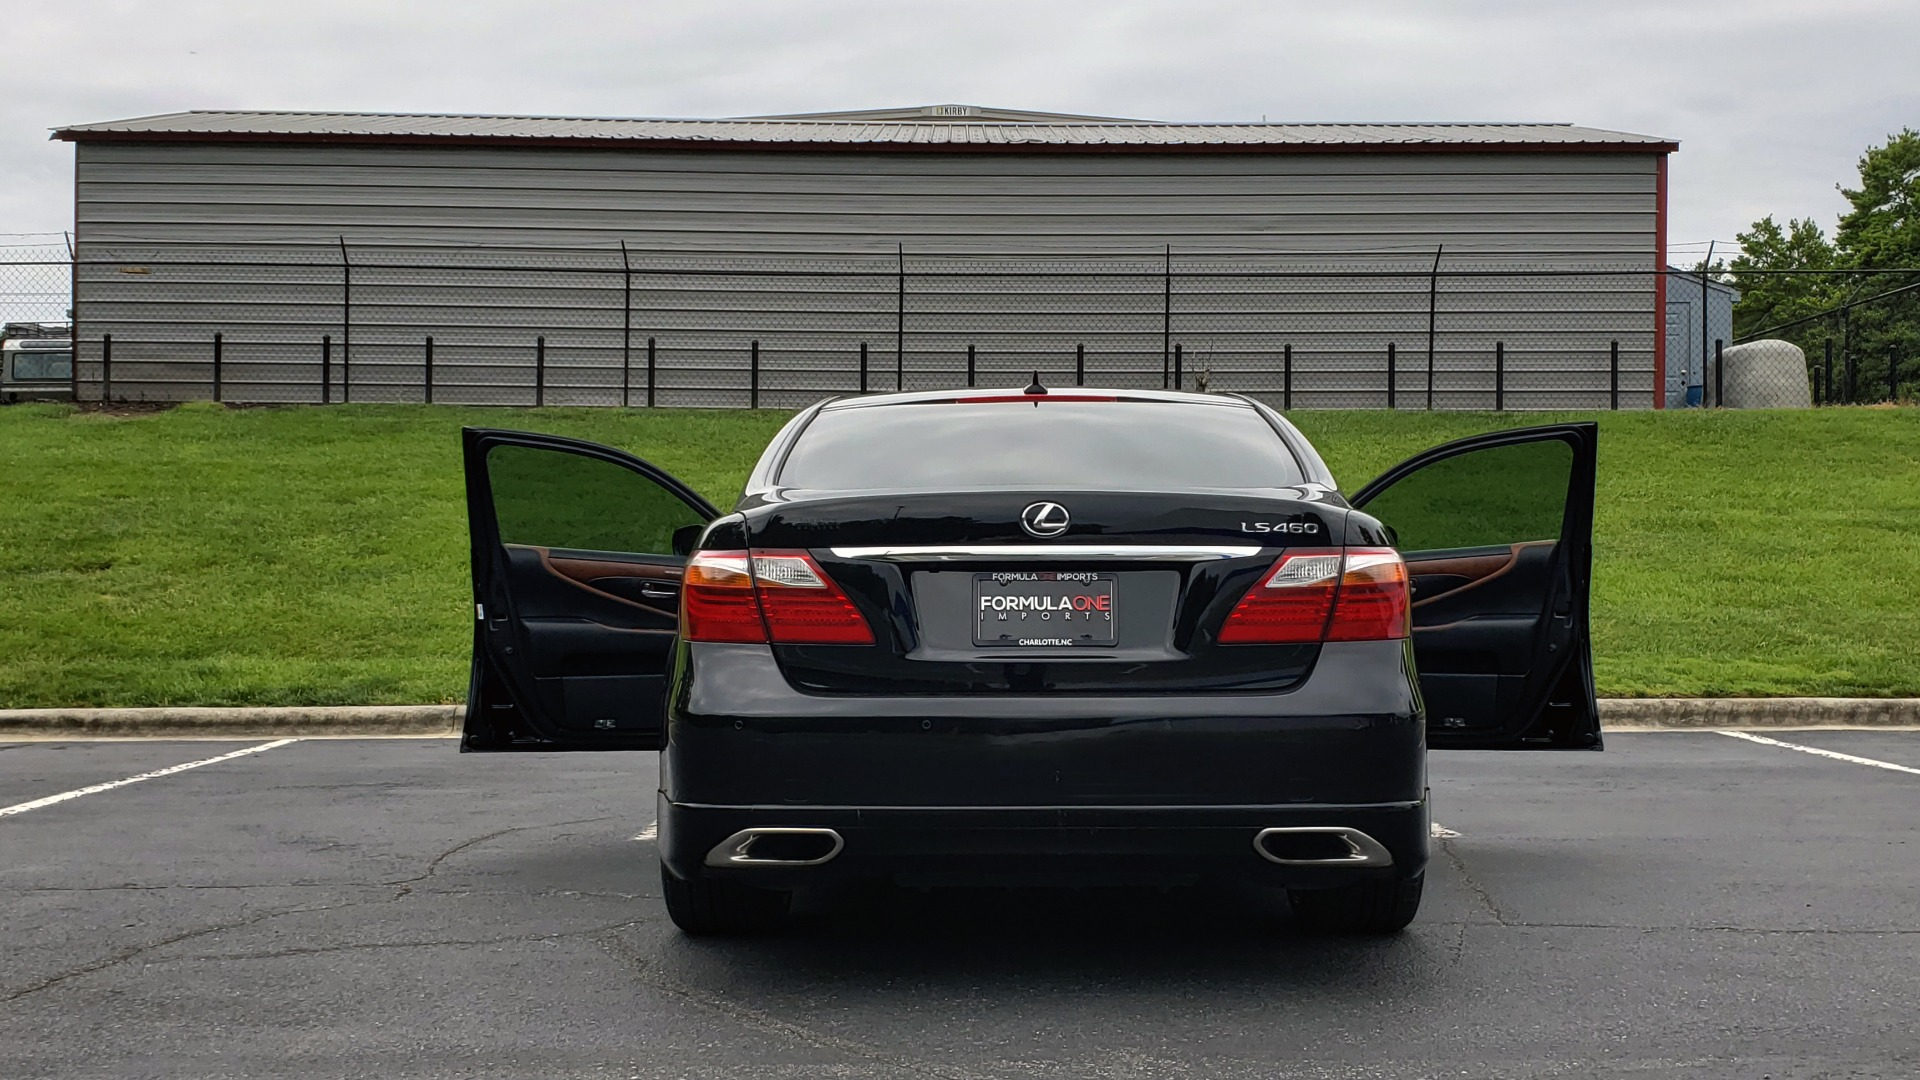 Used 2012 Lexus LS 460 COMFORT W/SPORT / VENT SEATS / NAV / MARK LEV SND / SUNROOF for sale Sold at Formula Imports in Charlotte NC 28227 19